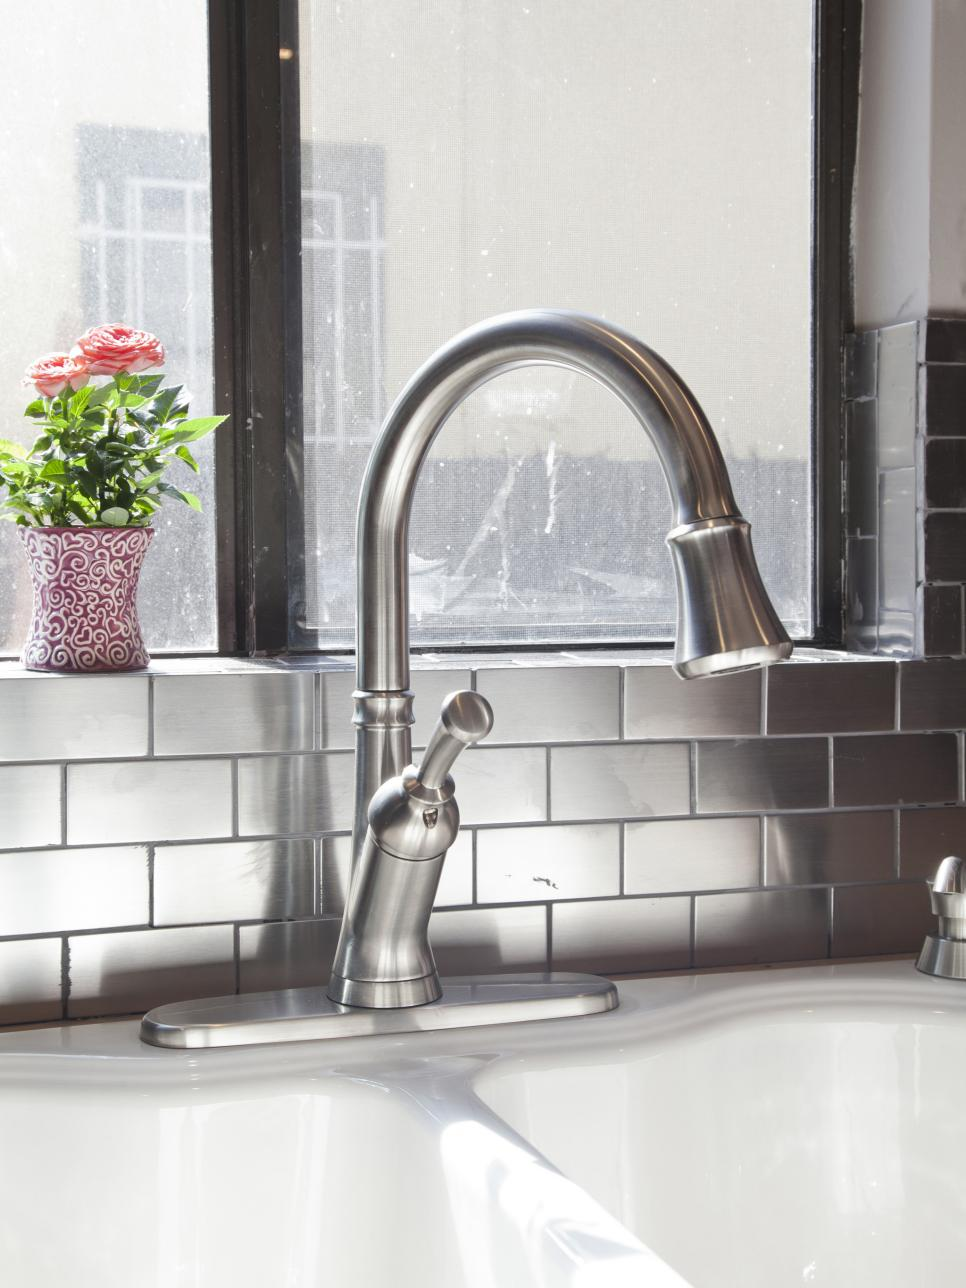 Metallic Tiles Will Add A Glamorous Backsplash In Your Kitchen Page 2 Of 2